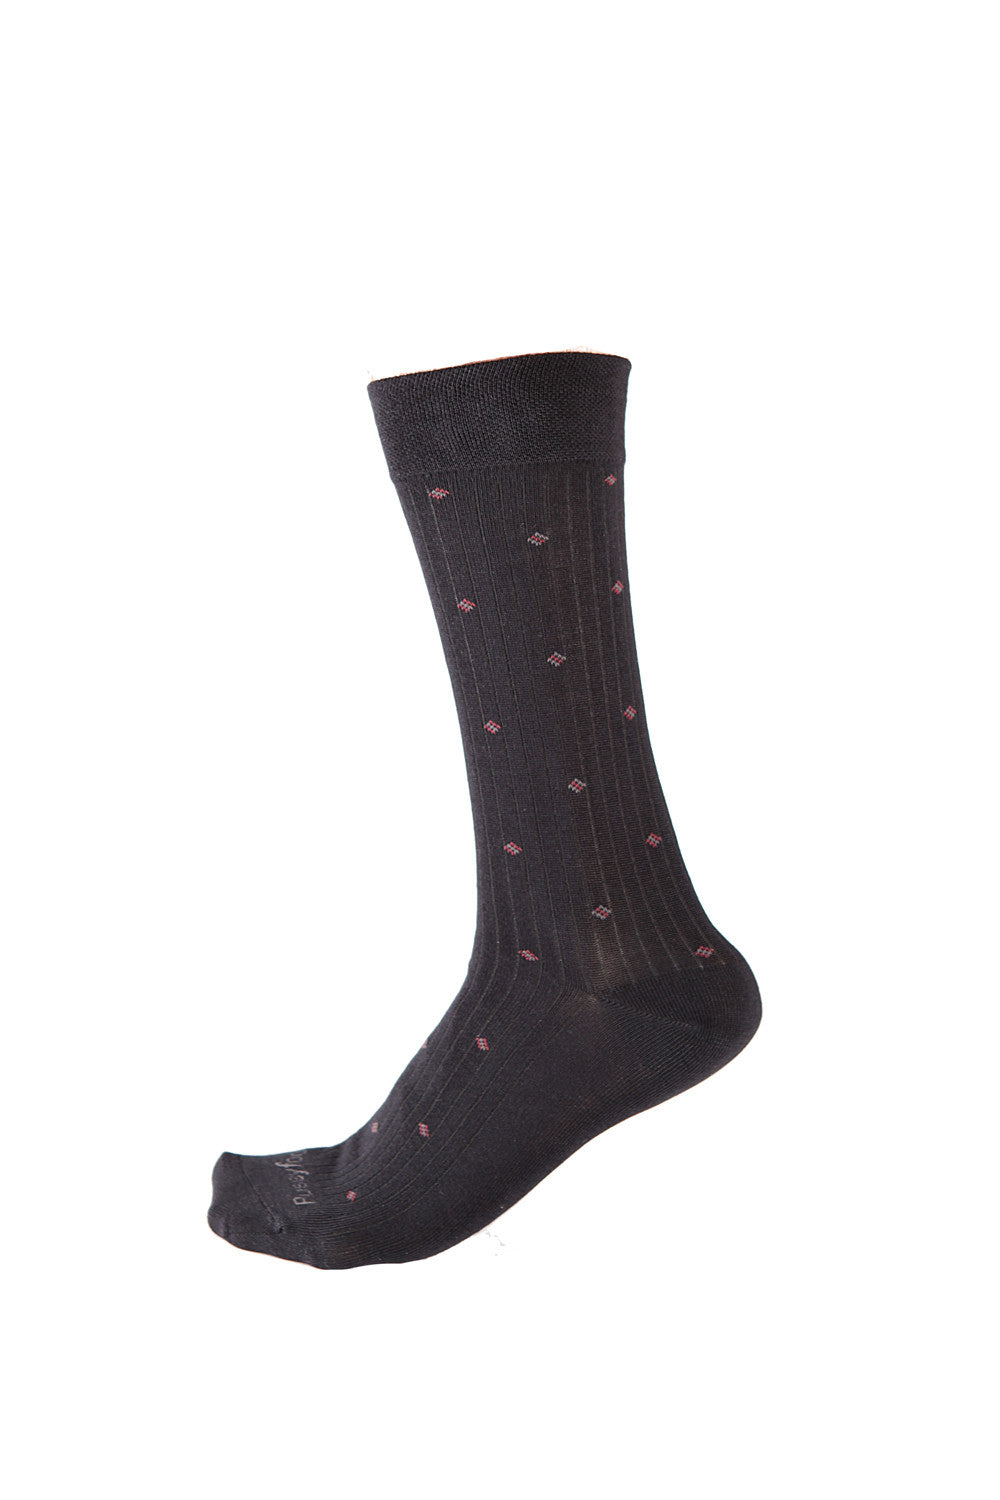 Pussyfoot Non Tight Comfort Health Socks 2 Pack - Black/Red